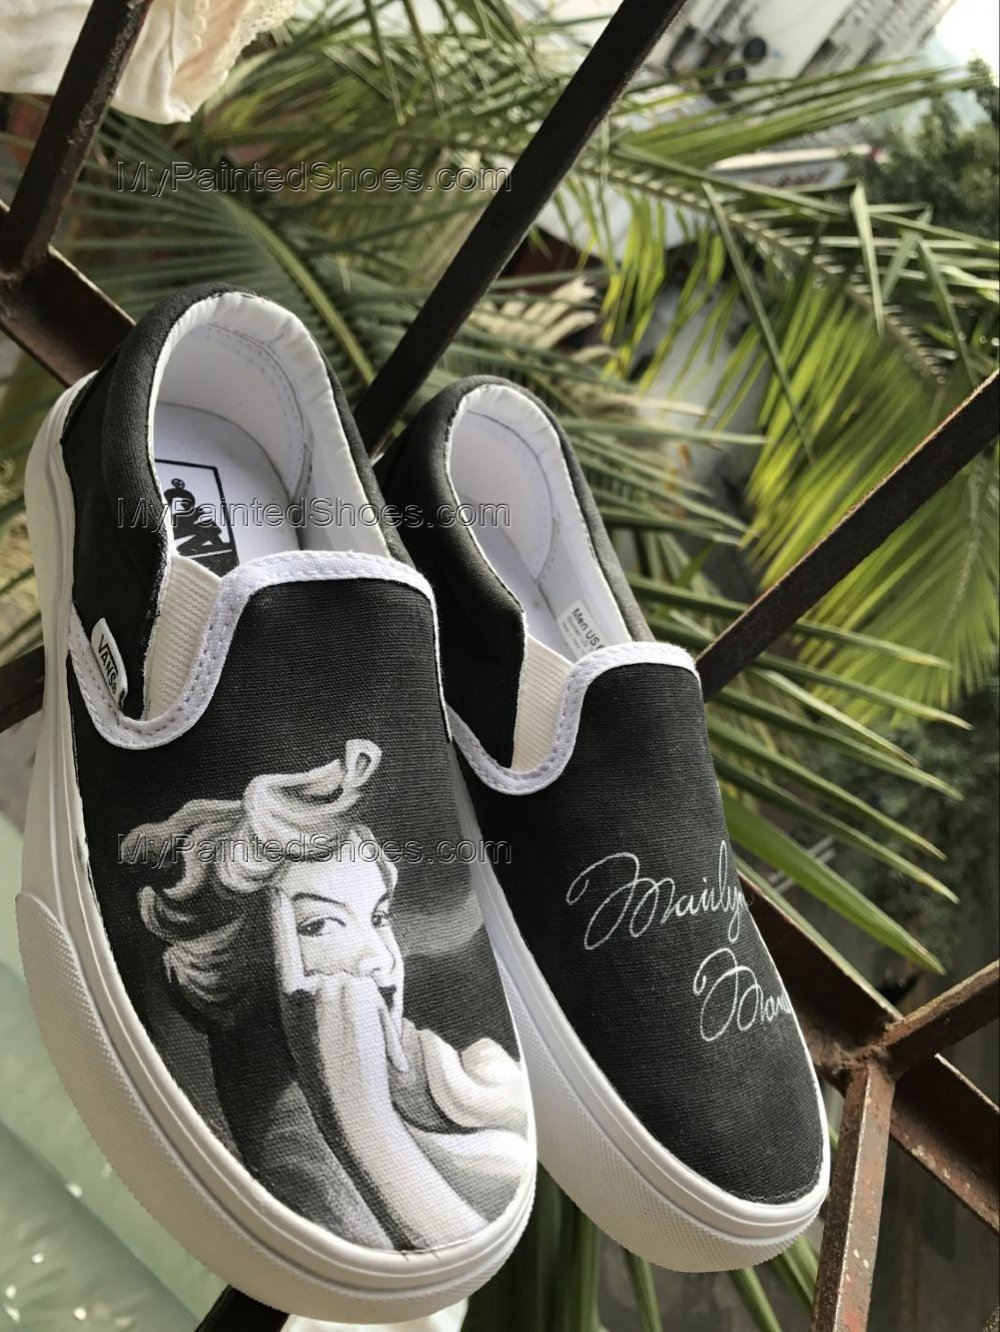 Marilyn Monroe Vans Slipon Custom Shoes Hand Painted Shoes Hand-1